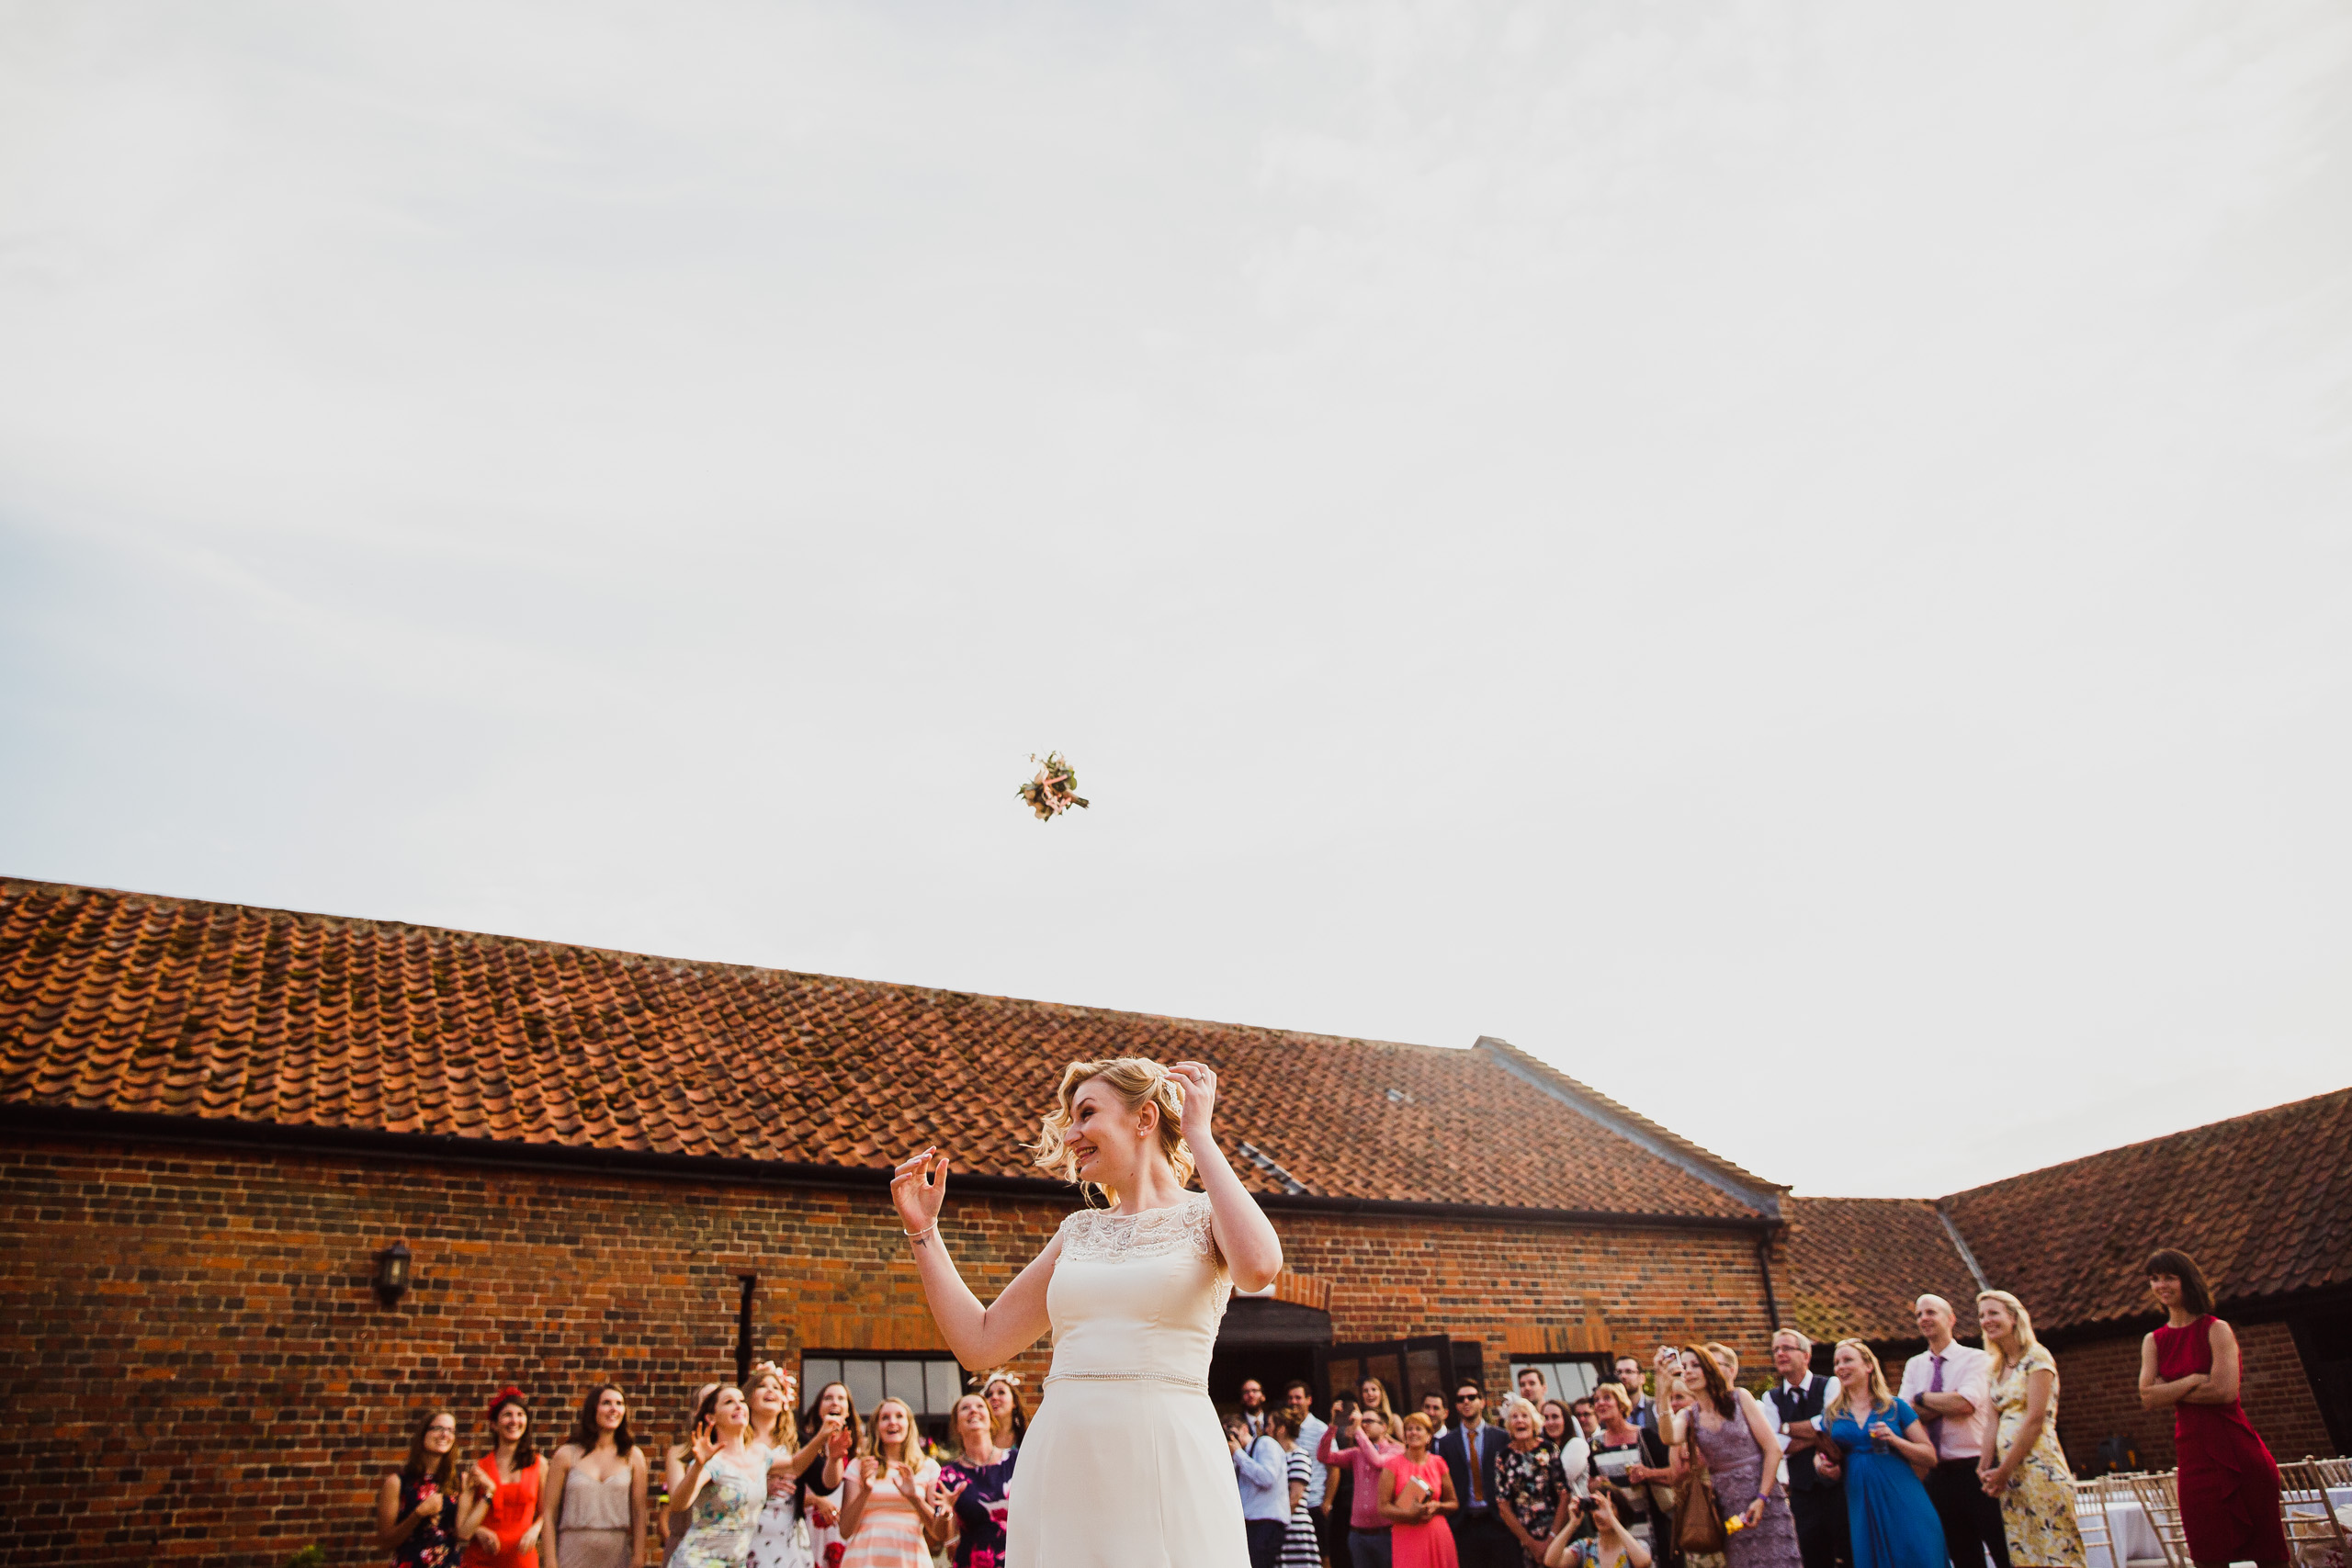 Bride tosses bouquet at Hautbois Hall wedding